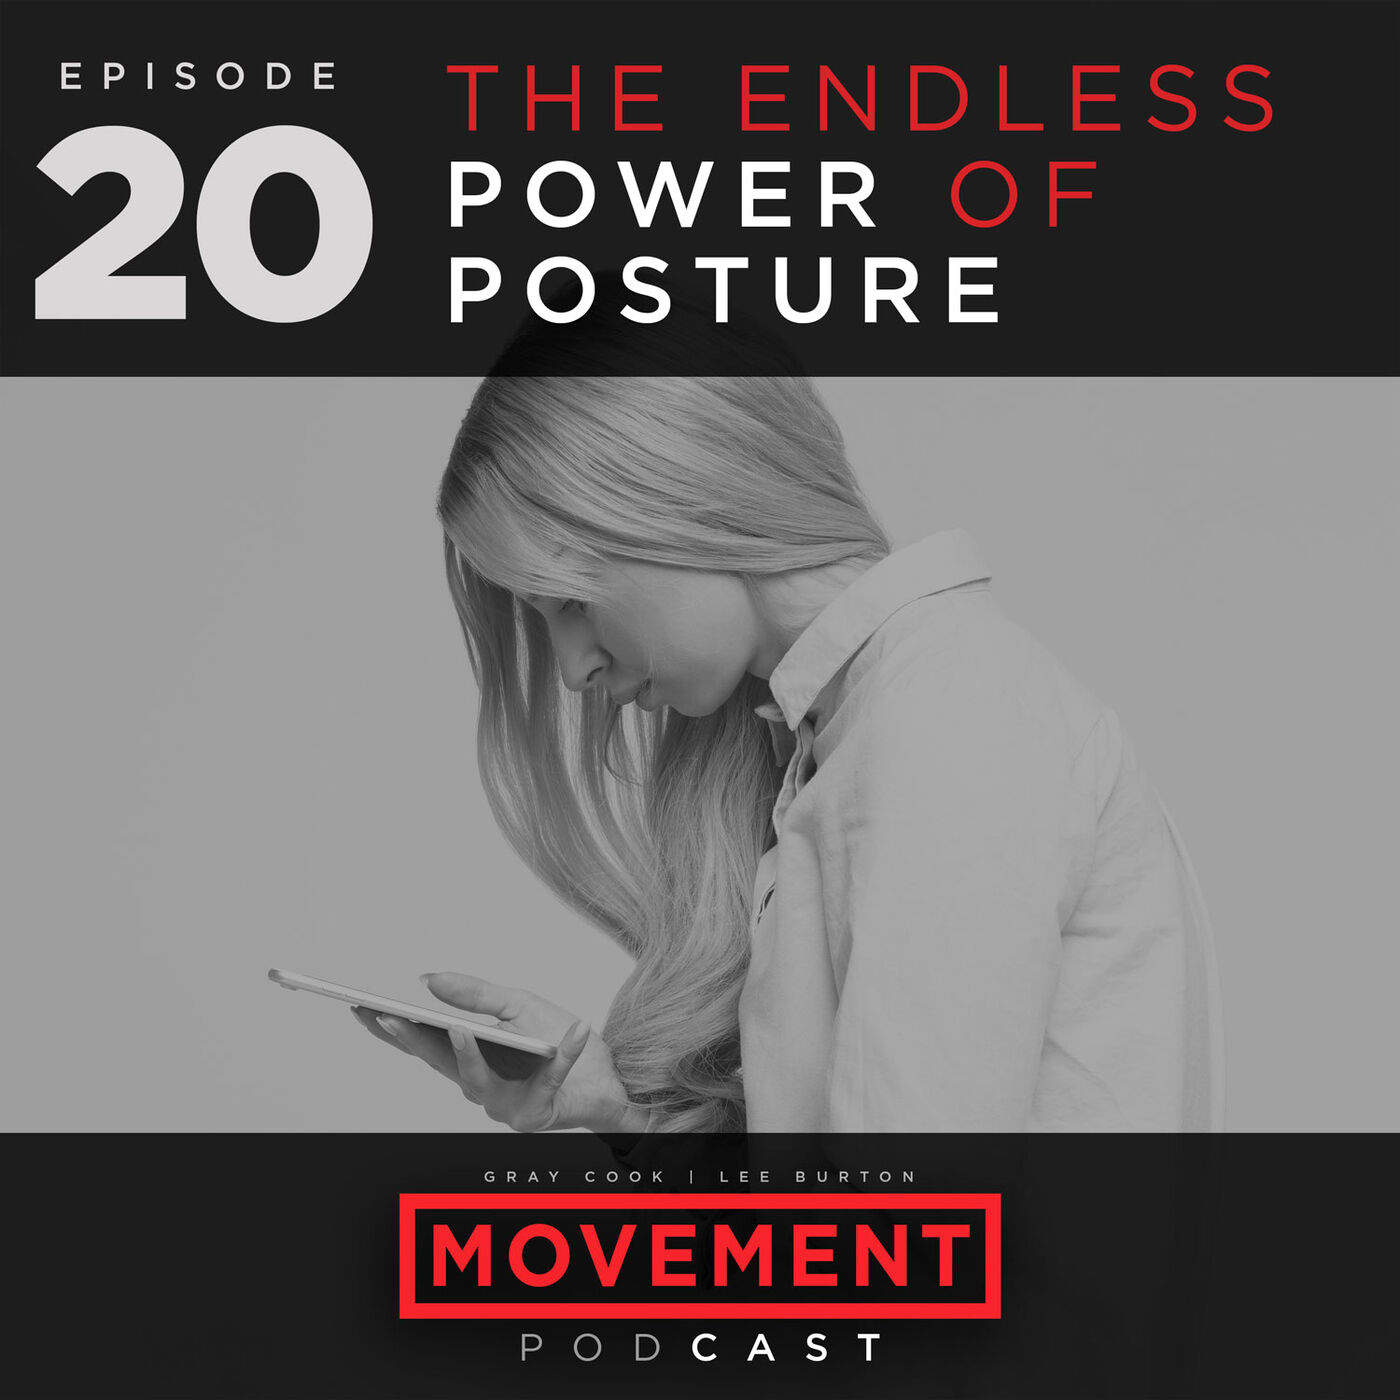 The Endless Power of Posture